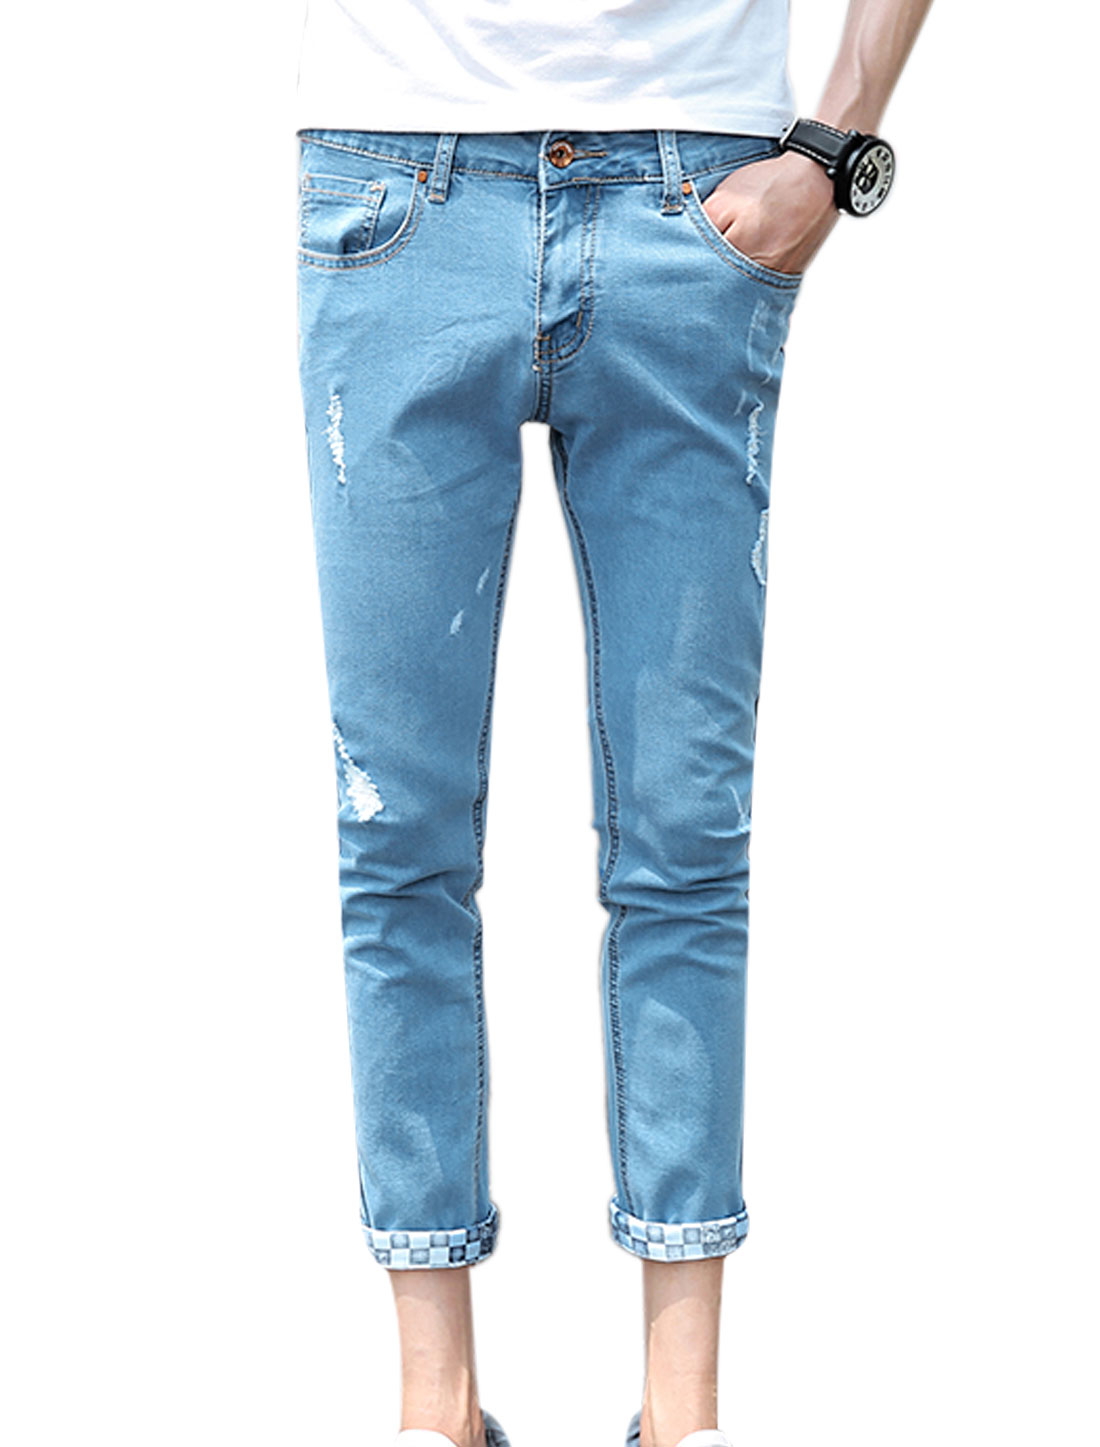 Men Distressed Detail Classic Five Pockets Slim Fit Cropped Jeans Light Blue W30